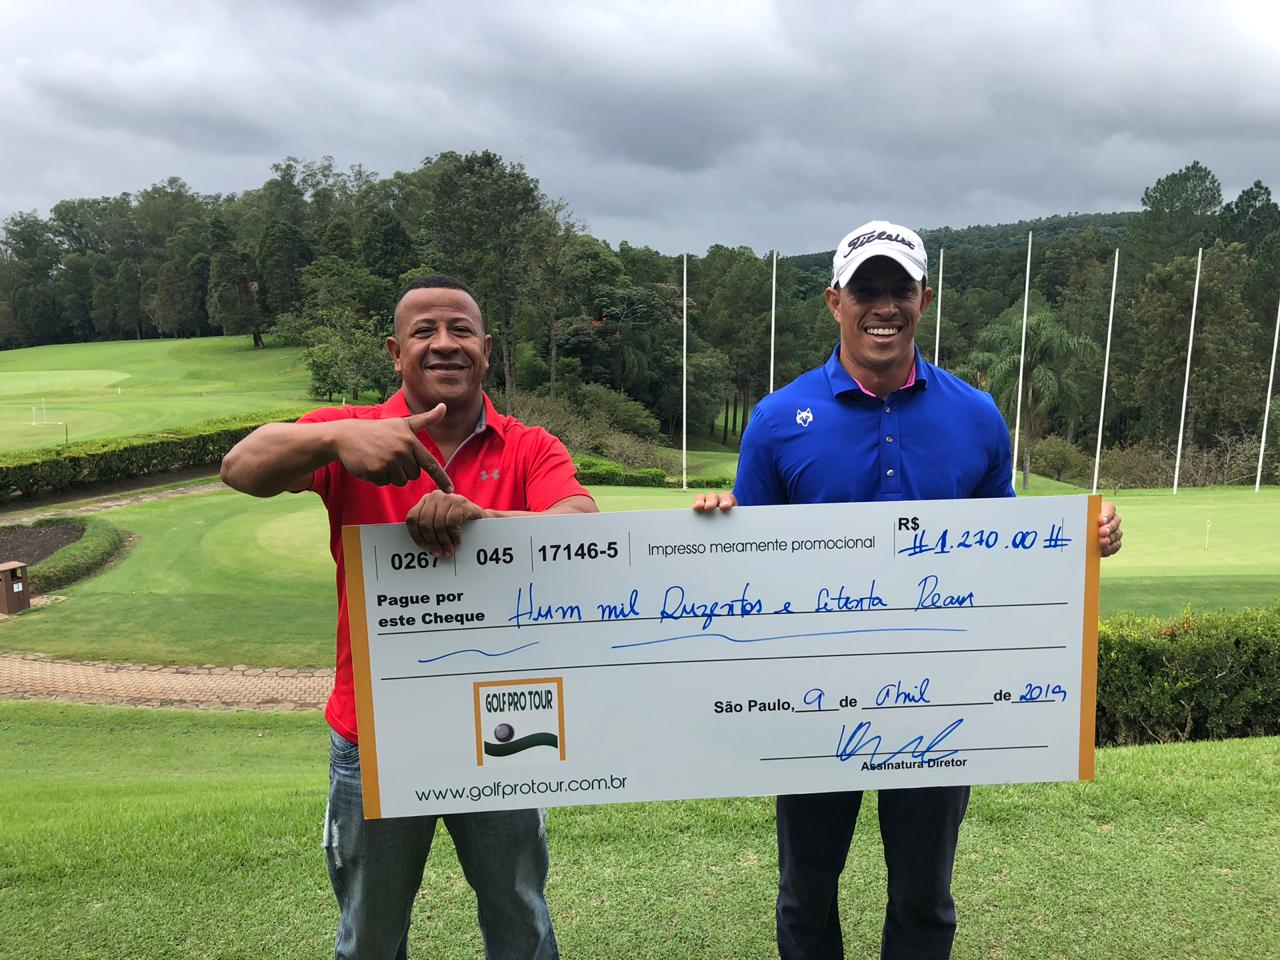 Hélio Cacimiro vence a II Etapa do Golf Pro Tour no PL Golf Club